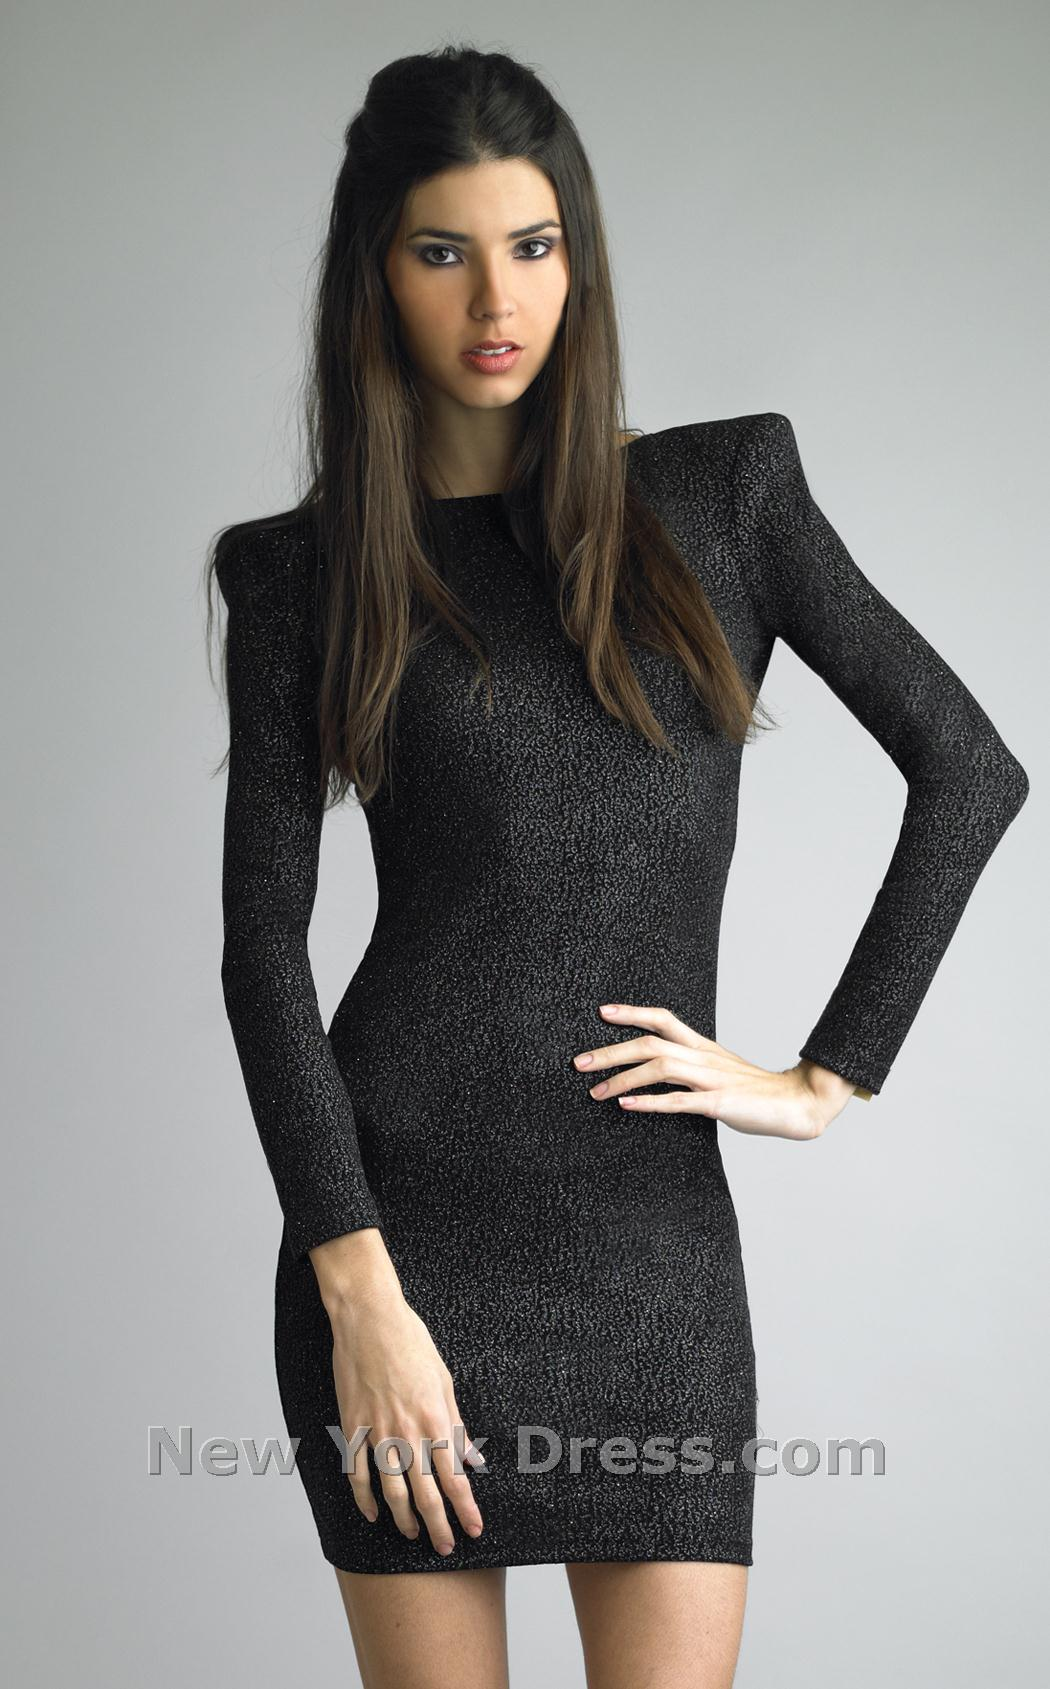 Stylist Pick: Cocktail Dresses For New Year's Eve | The Fashion Foot